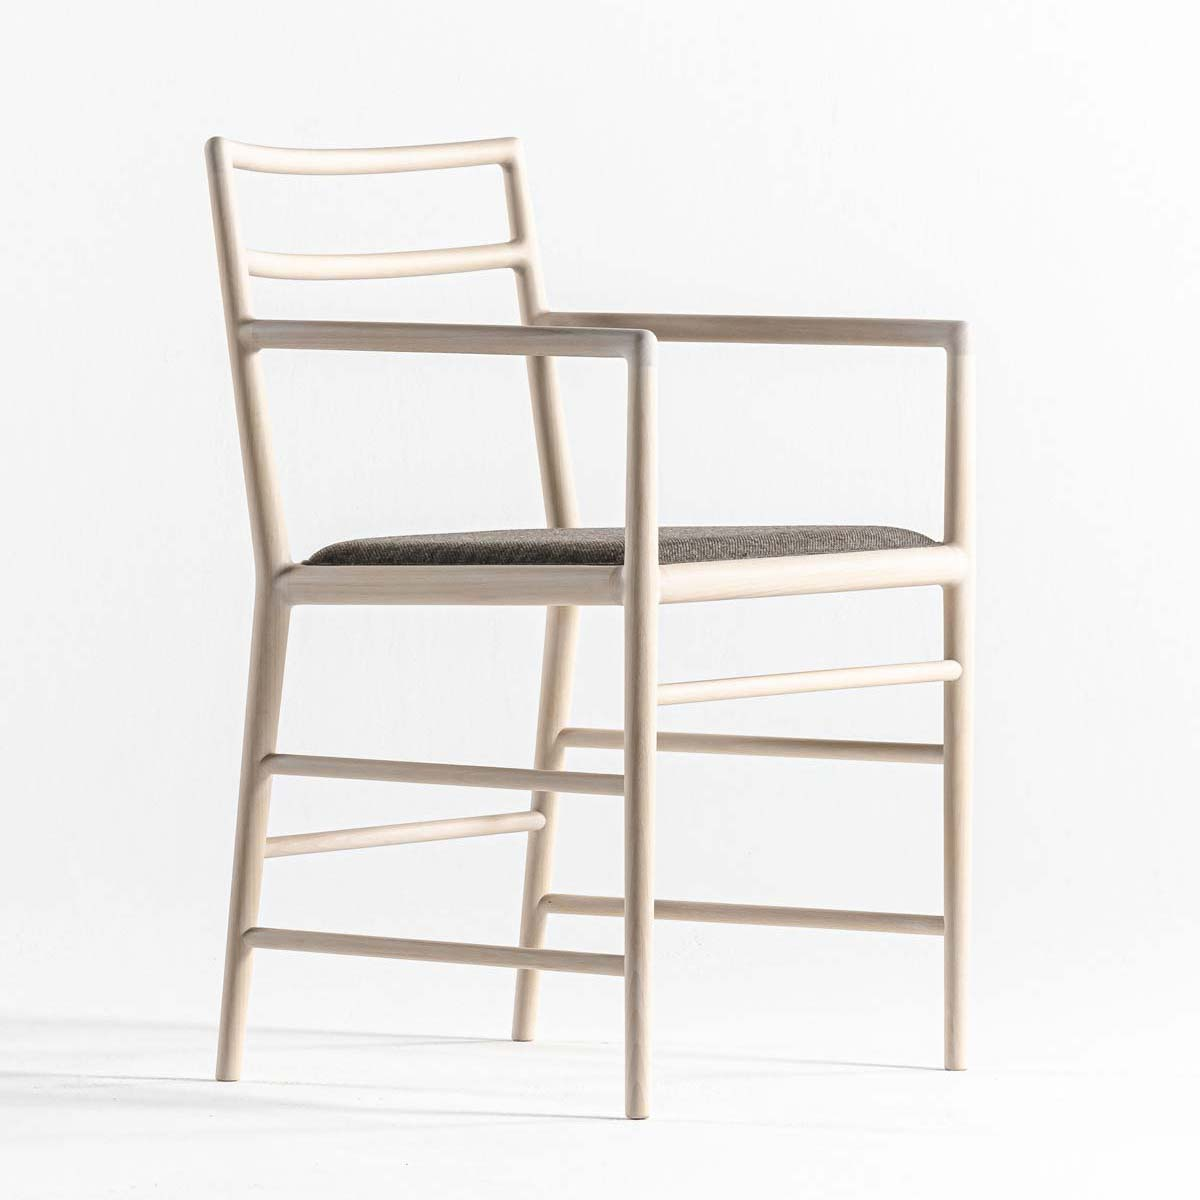 The sensitive light chair by Time & Style